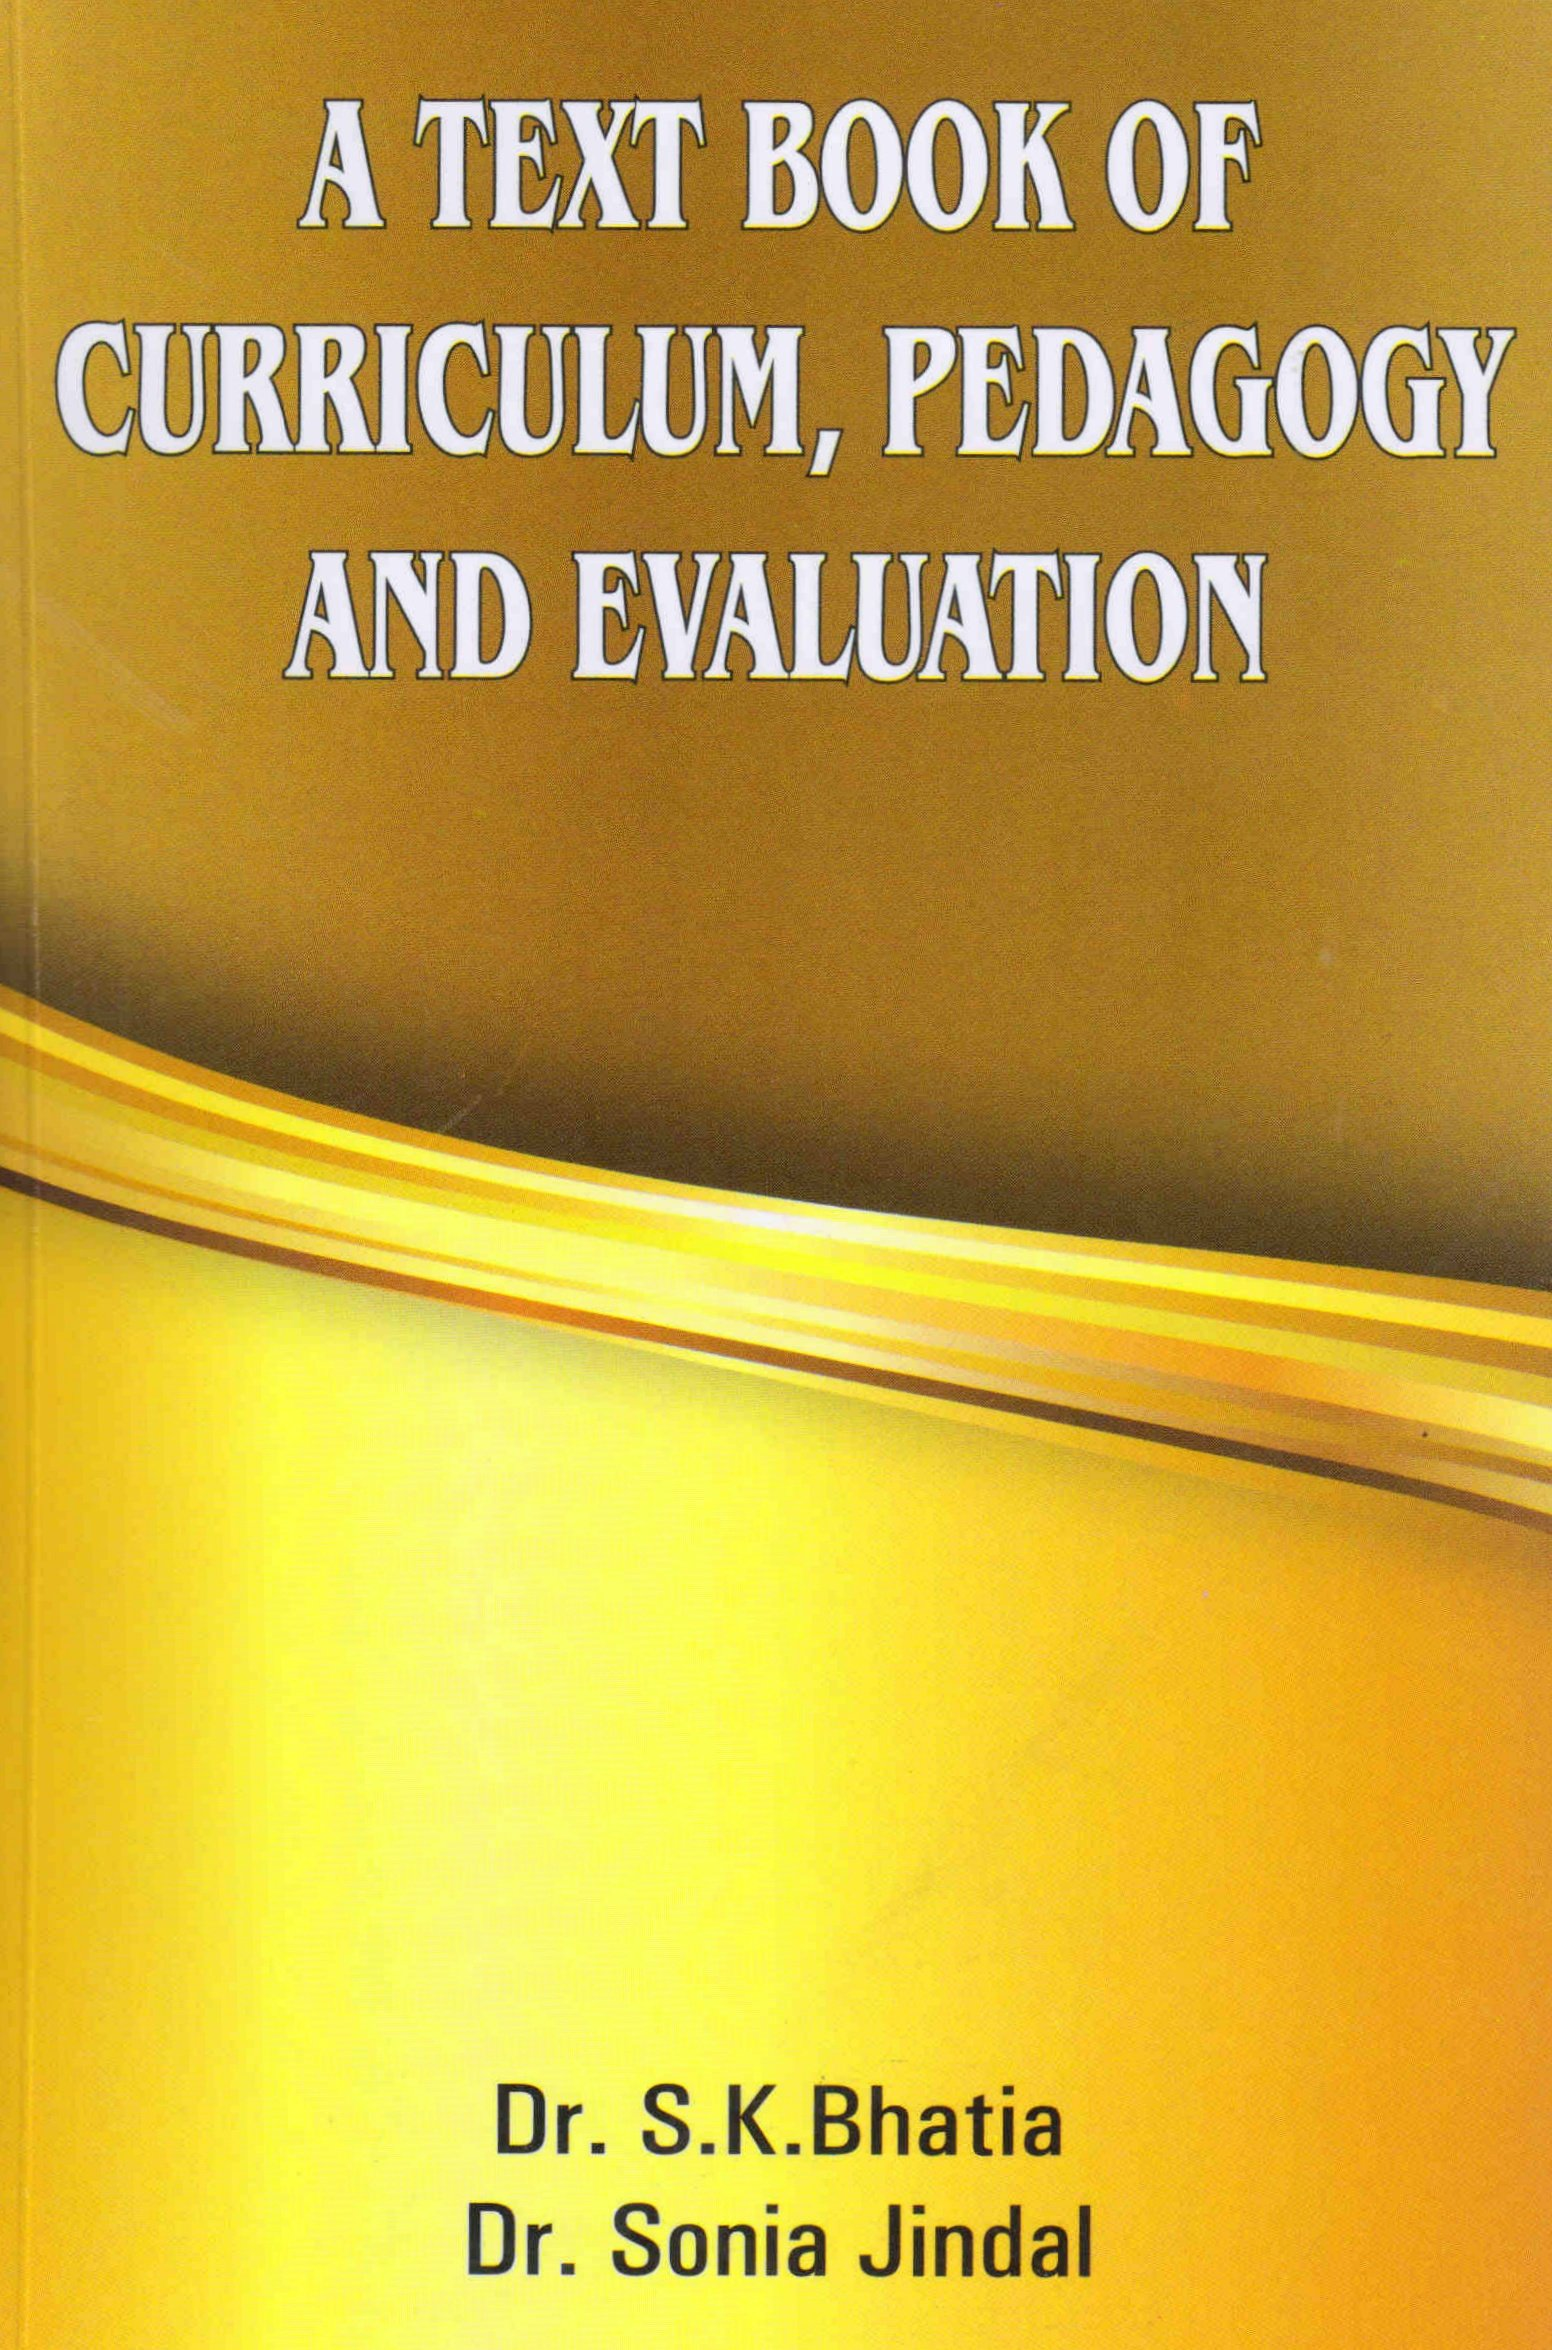 Buy A TEXT BOOK OF CURRICULUM, PEDAGOGY AND EVALUATION Book